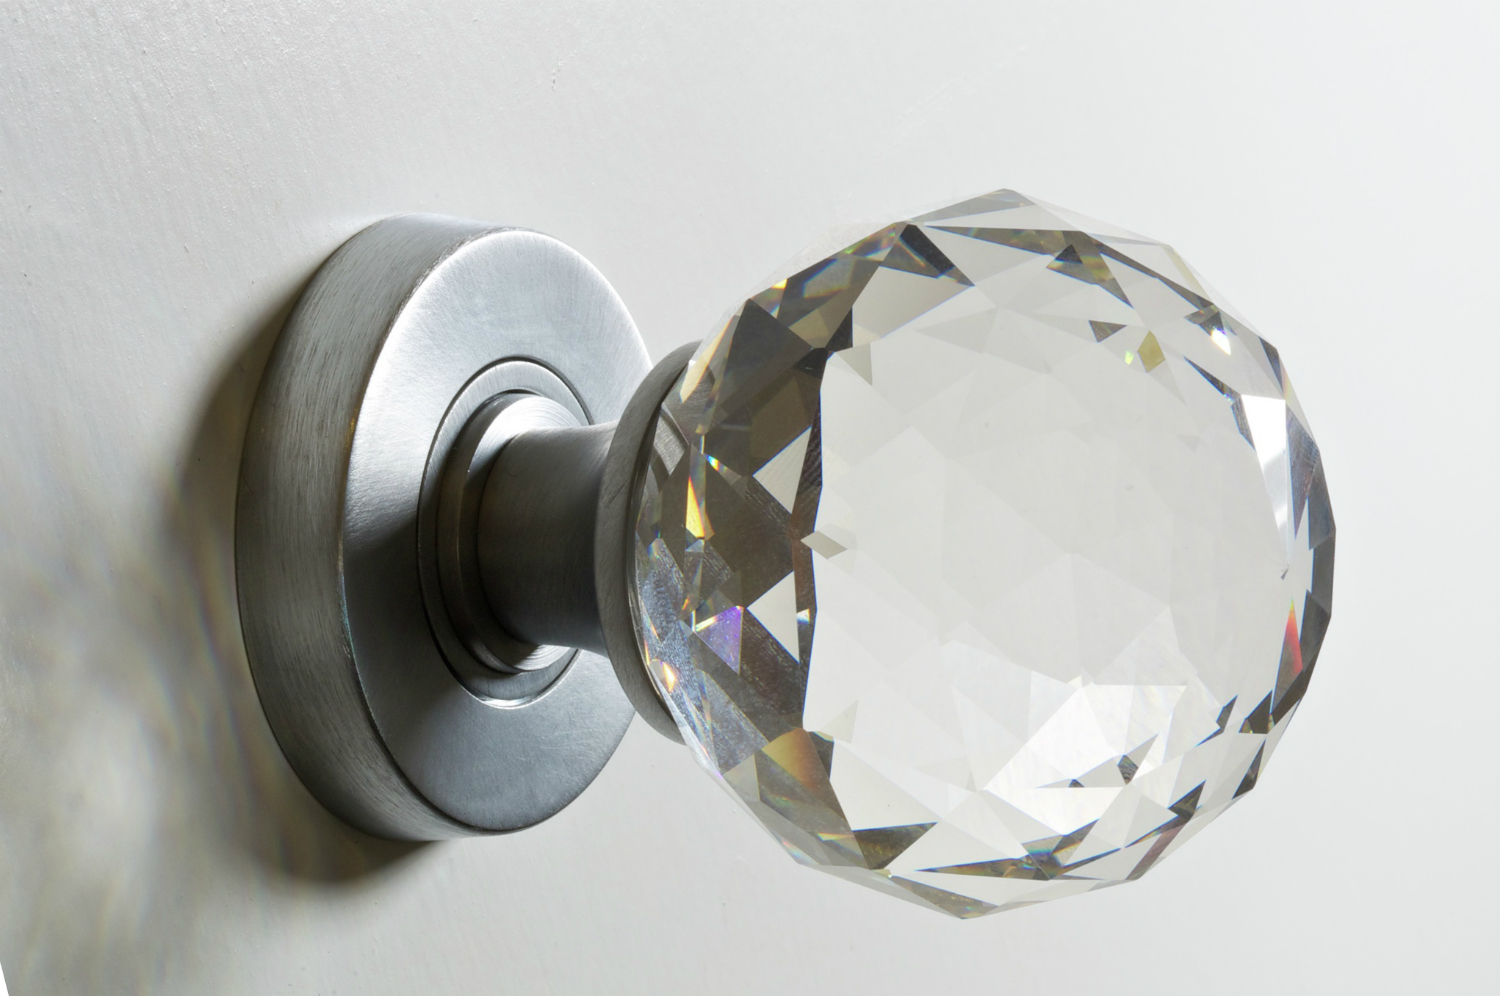 inexpensive door knobs photo - 11